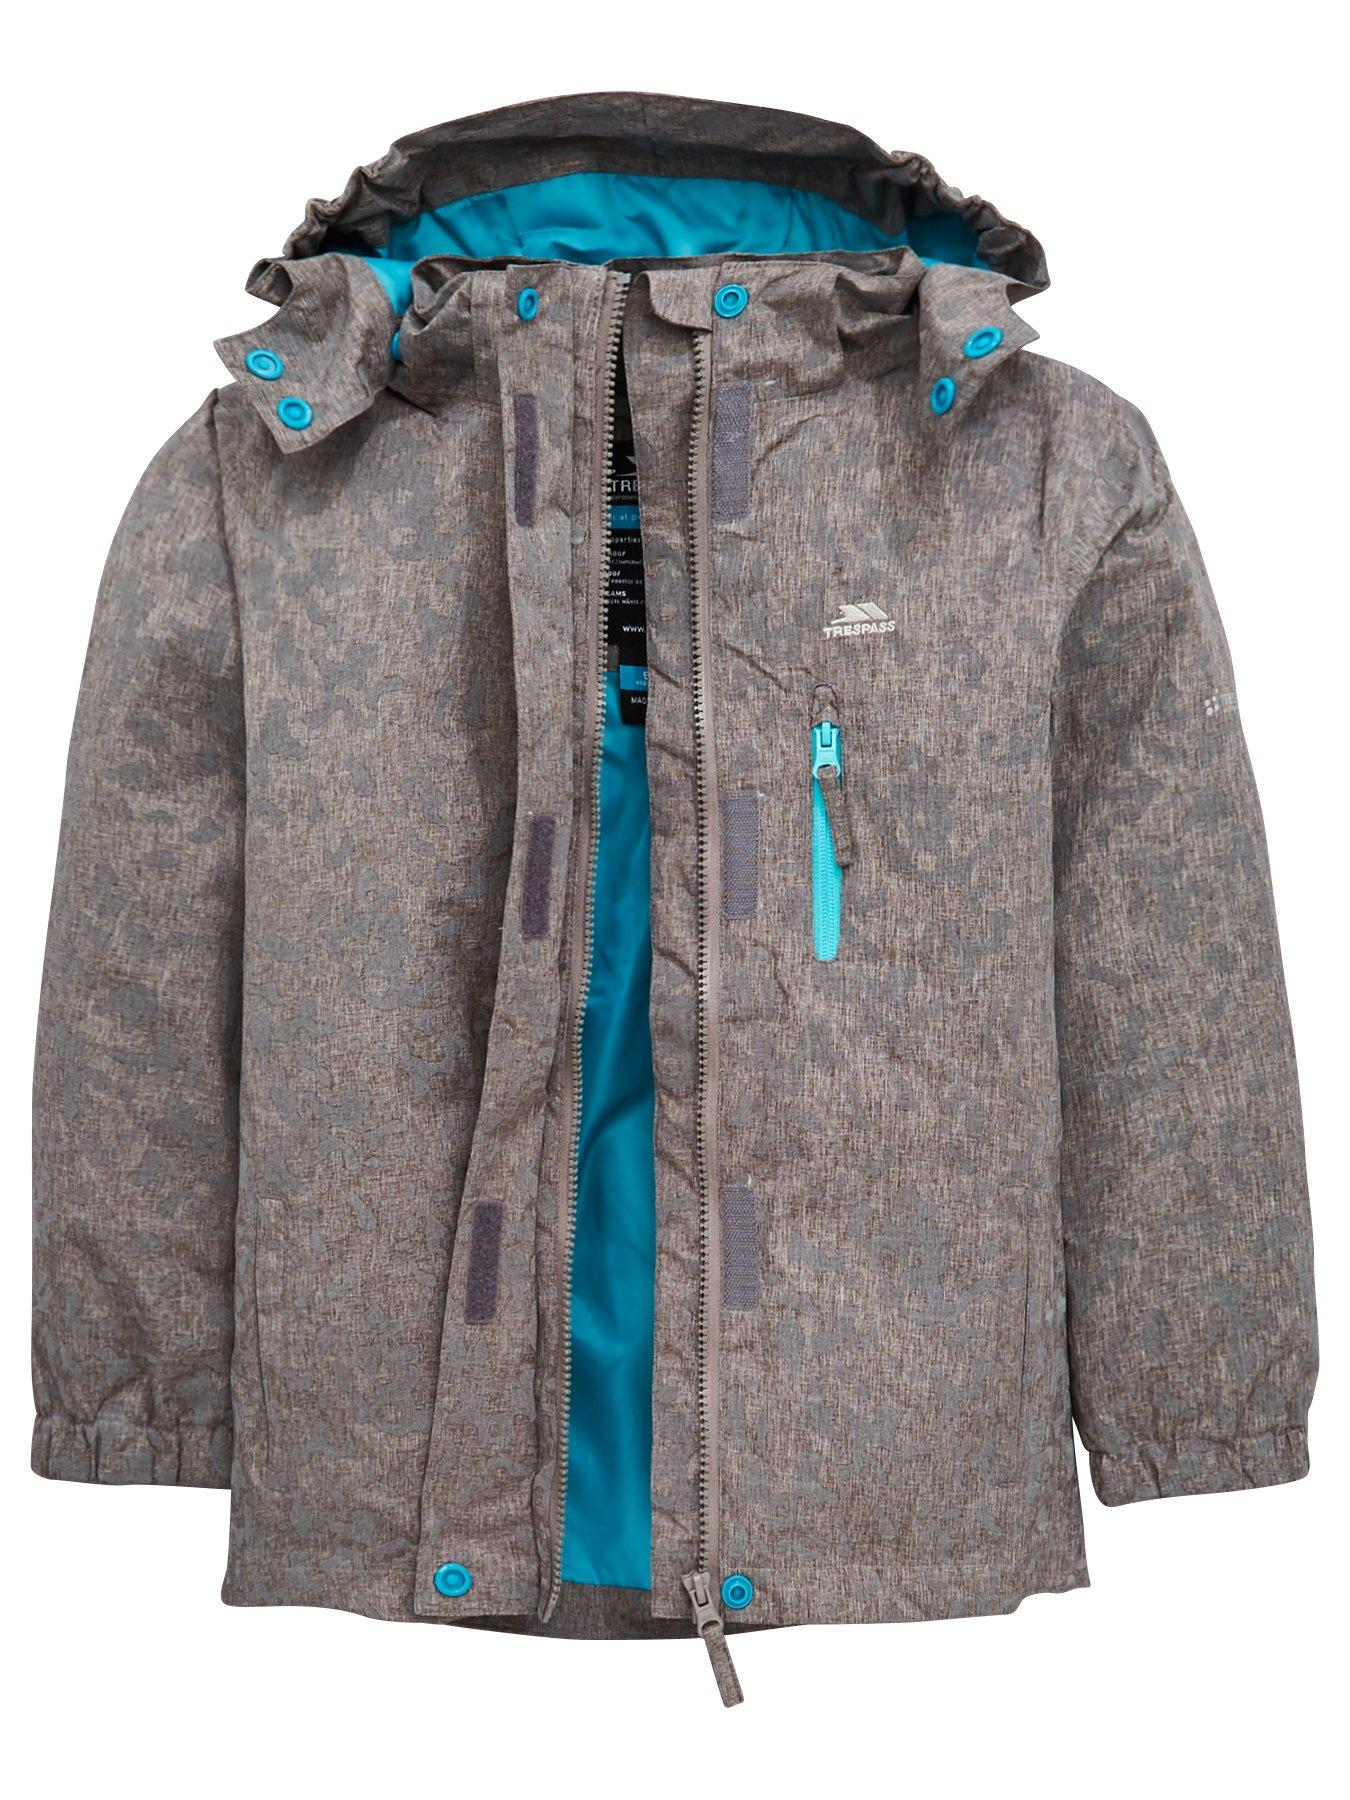 Trespass Childrens Zoey Waterproof Jacket with Removable Hood